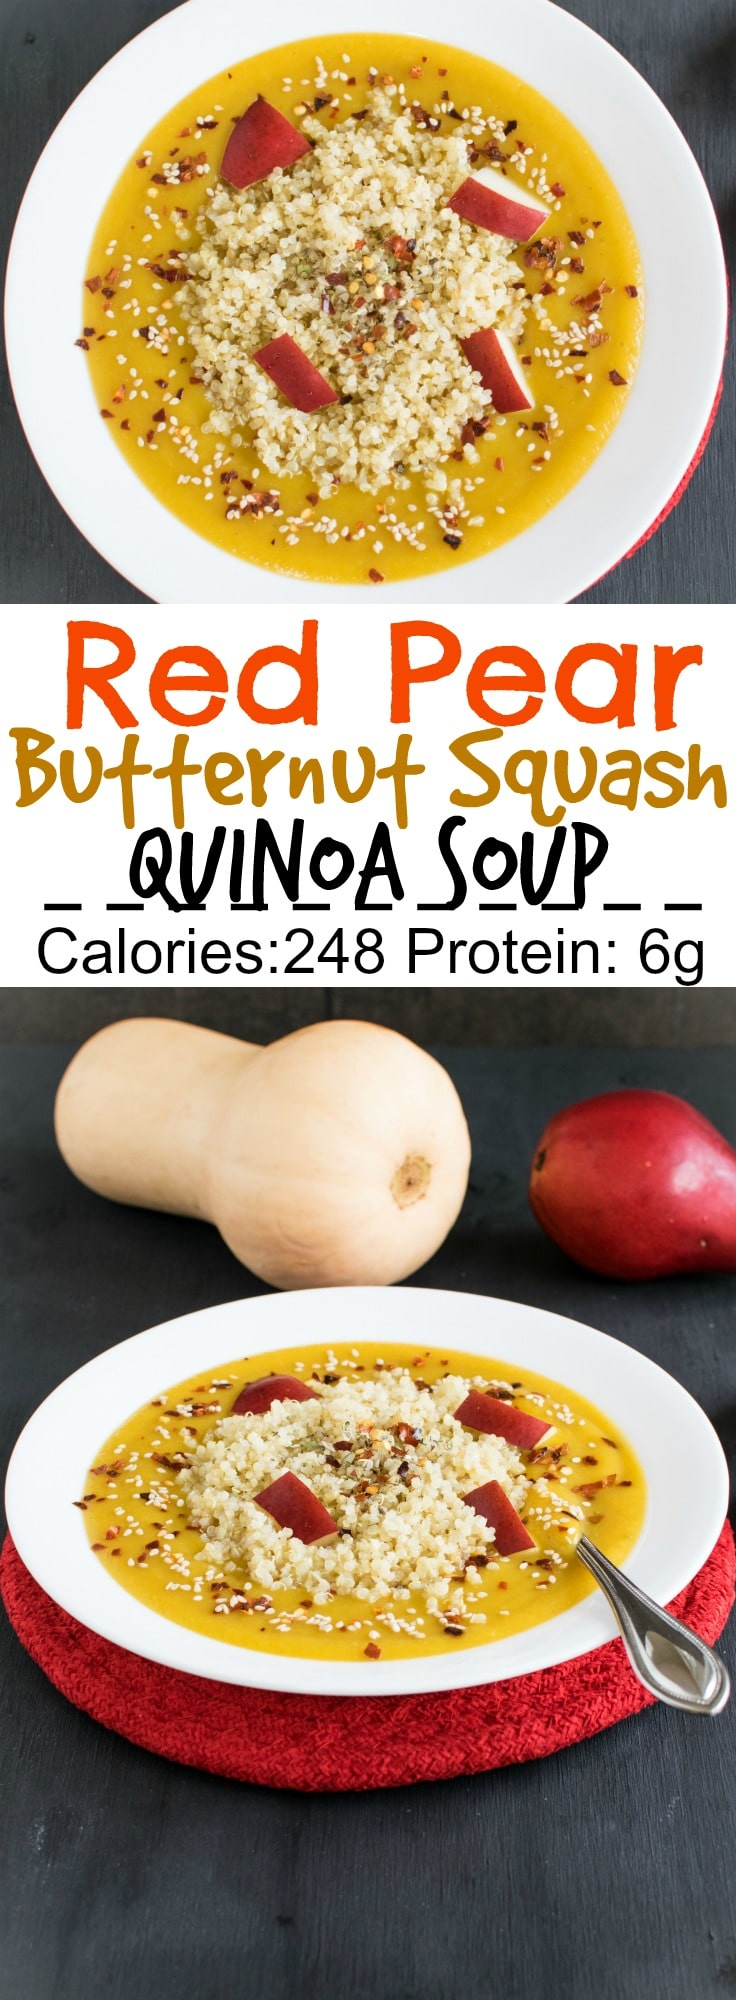 Red Pear Butternut Squash Soup with Quinoa | vegan and gluten free meal with lots flavors and immense nutrition | kiipfit.com